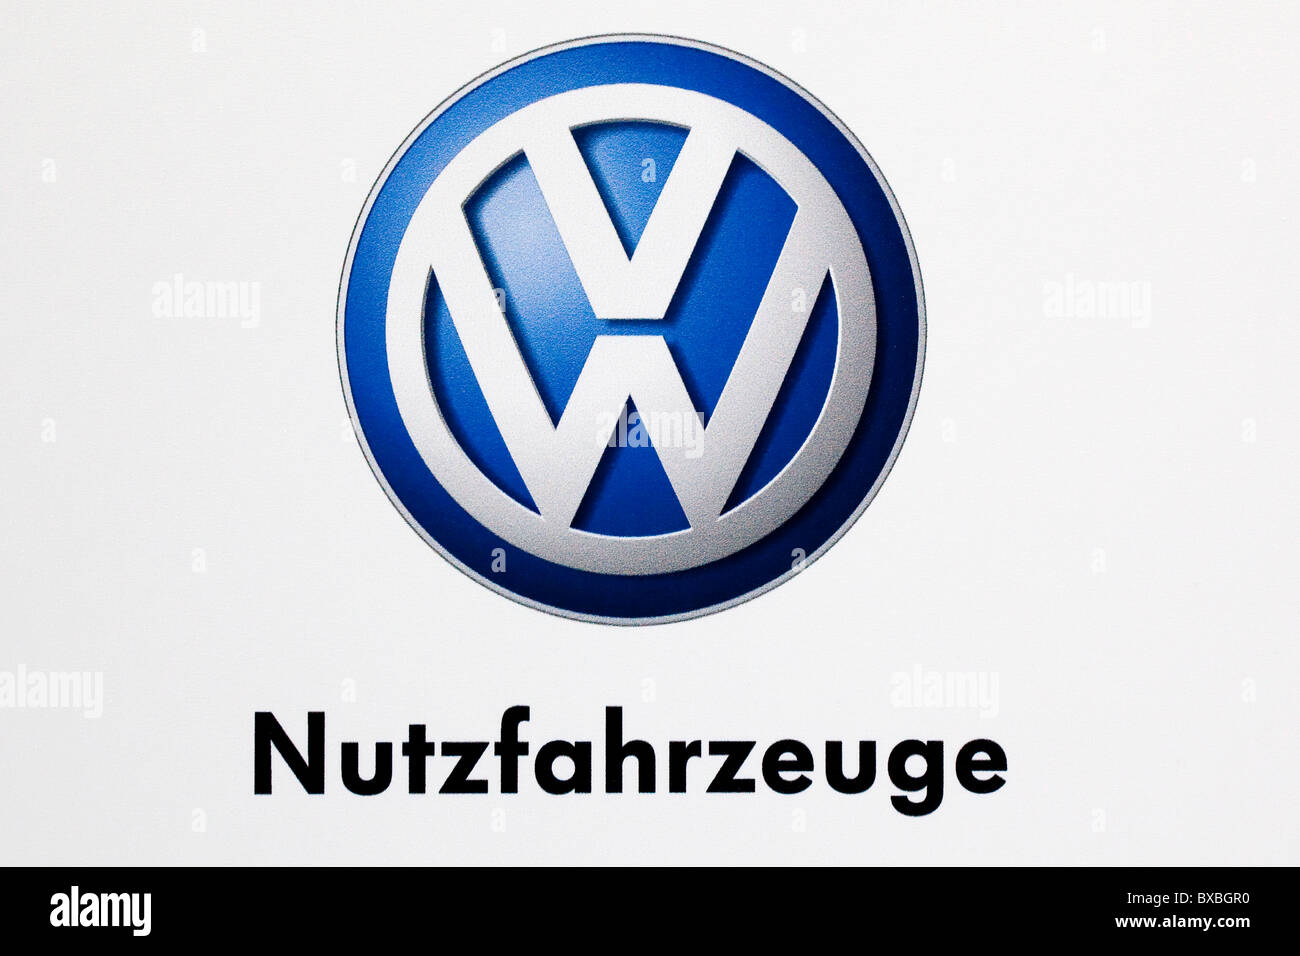 Logo of the Volkswagen Nutzfahrzeuge car brand for commercial vehicles Stock Photo